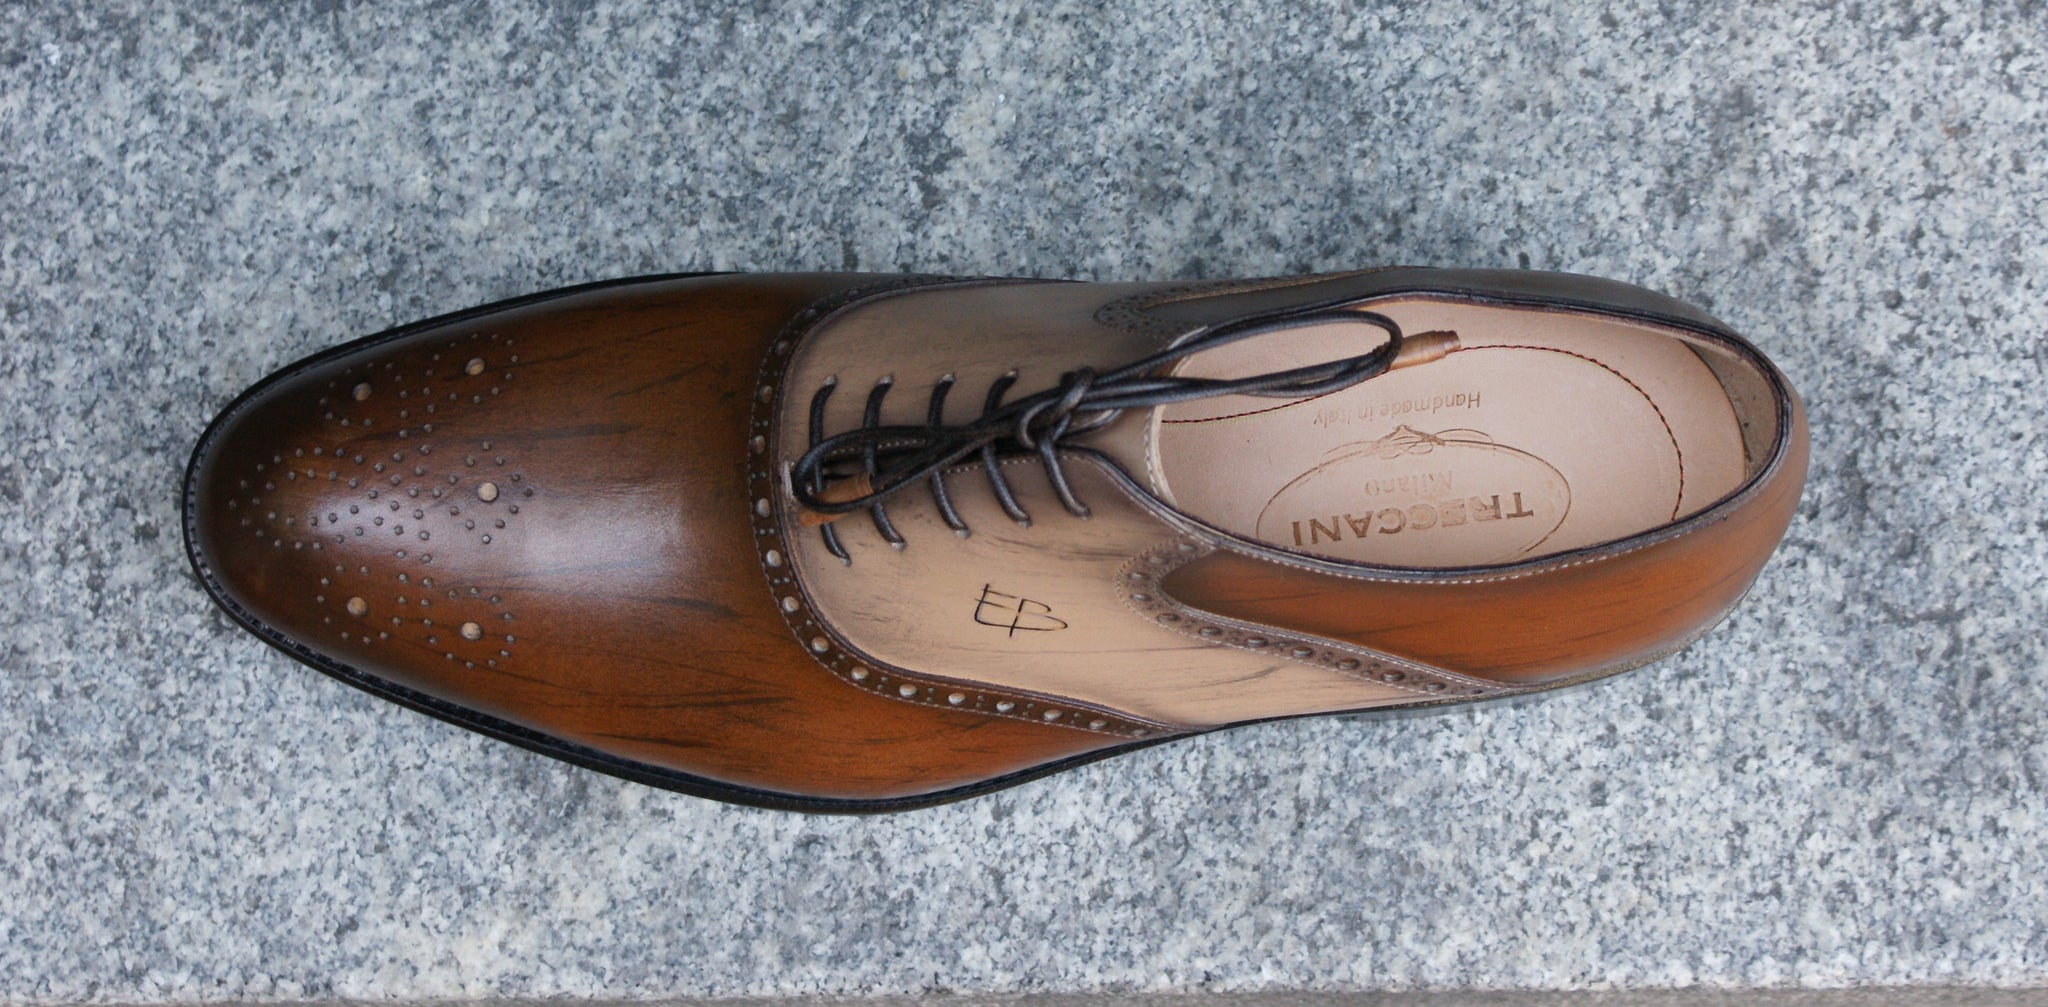 Luxury Italian Men's Shoes Lace Up Toronto NYC